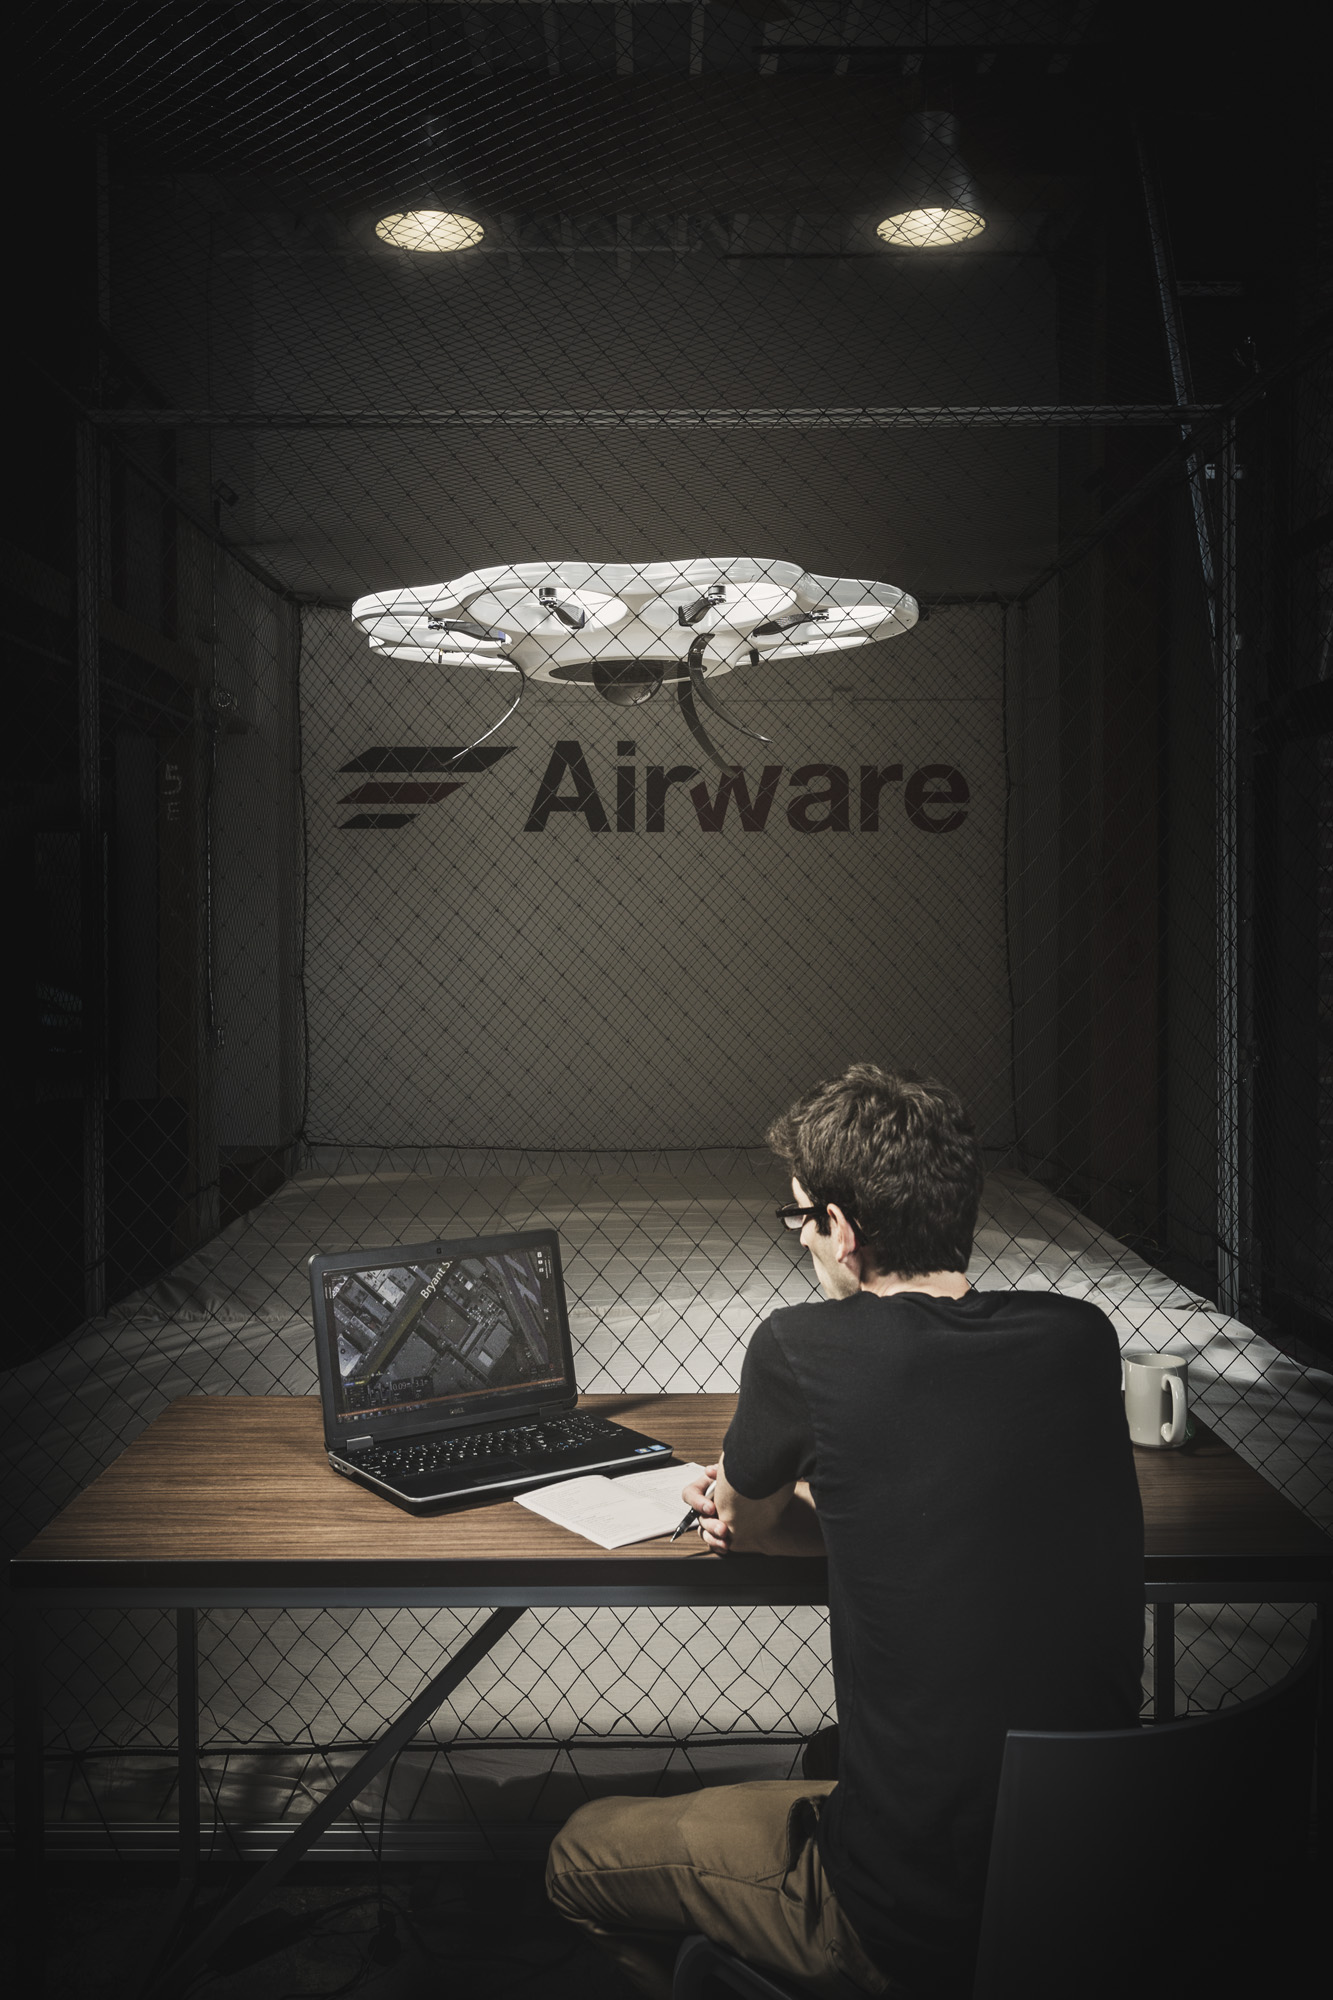 cc2015012 - Drone companies Airware and 3DRobototics photographed in San Fransisco, CA for Wired UK Magazine